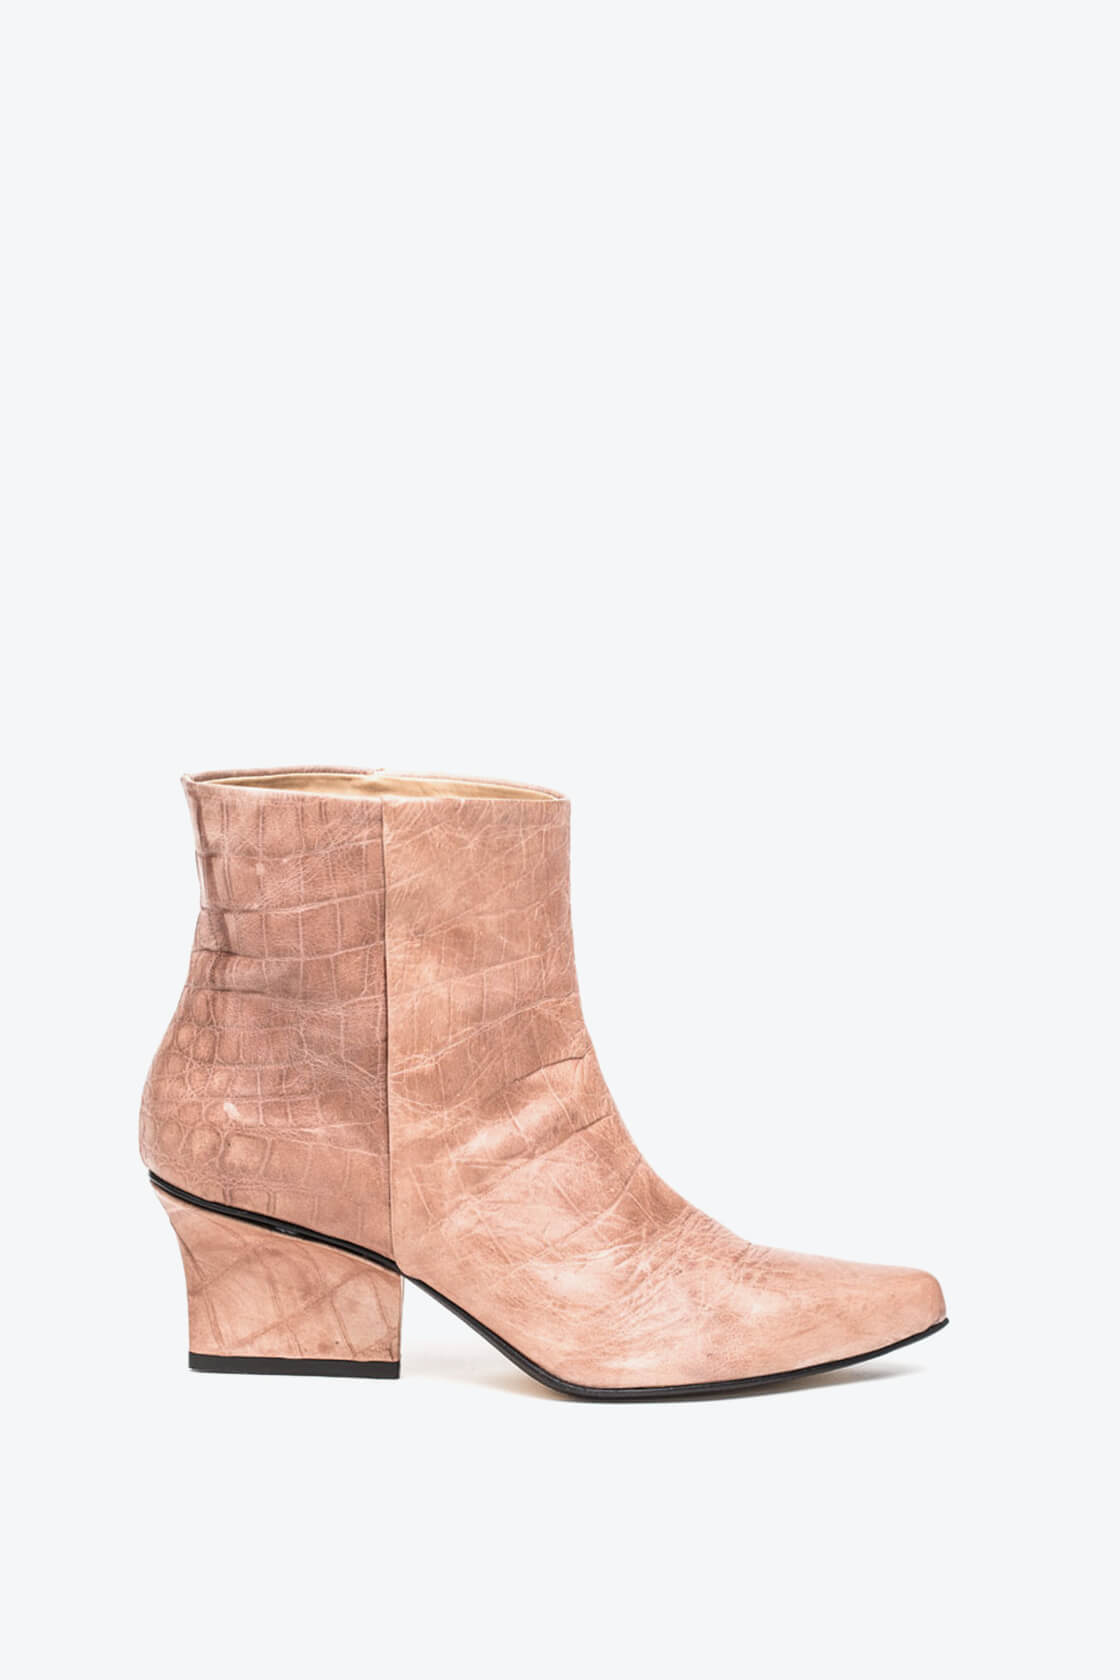 EJK0000014 Denis ankle boots nude croco 1